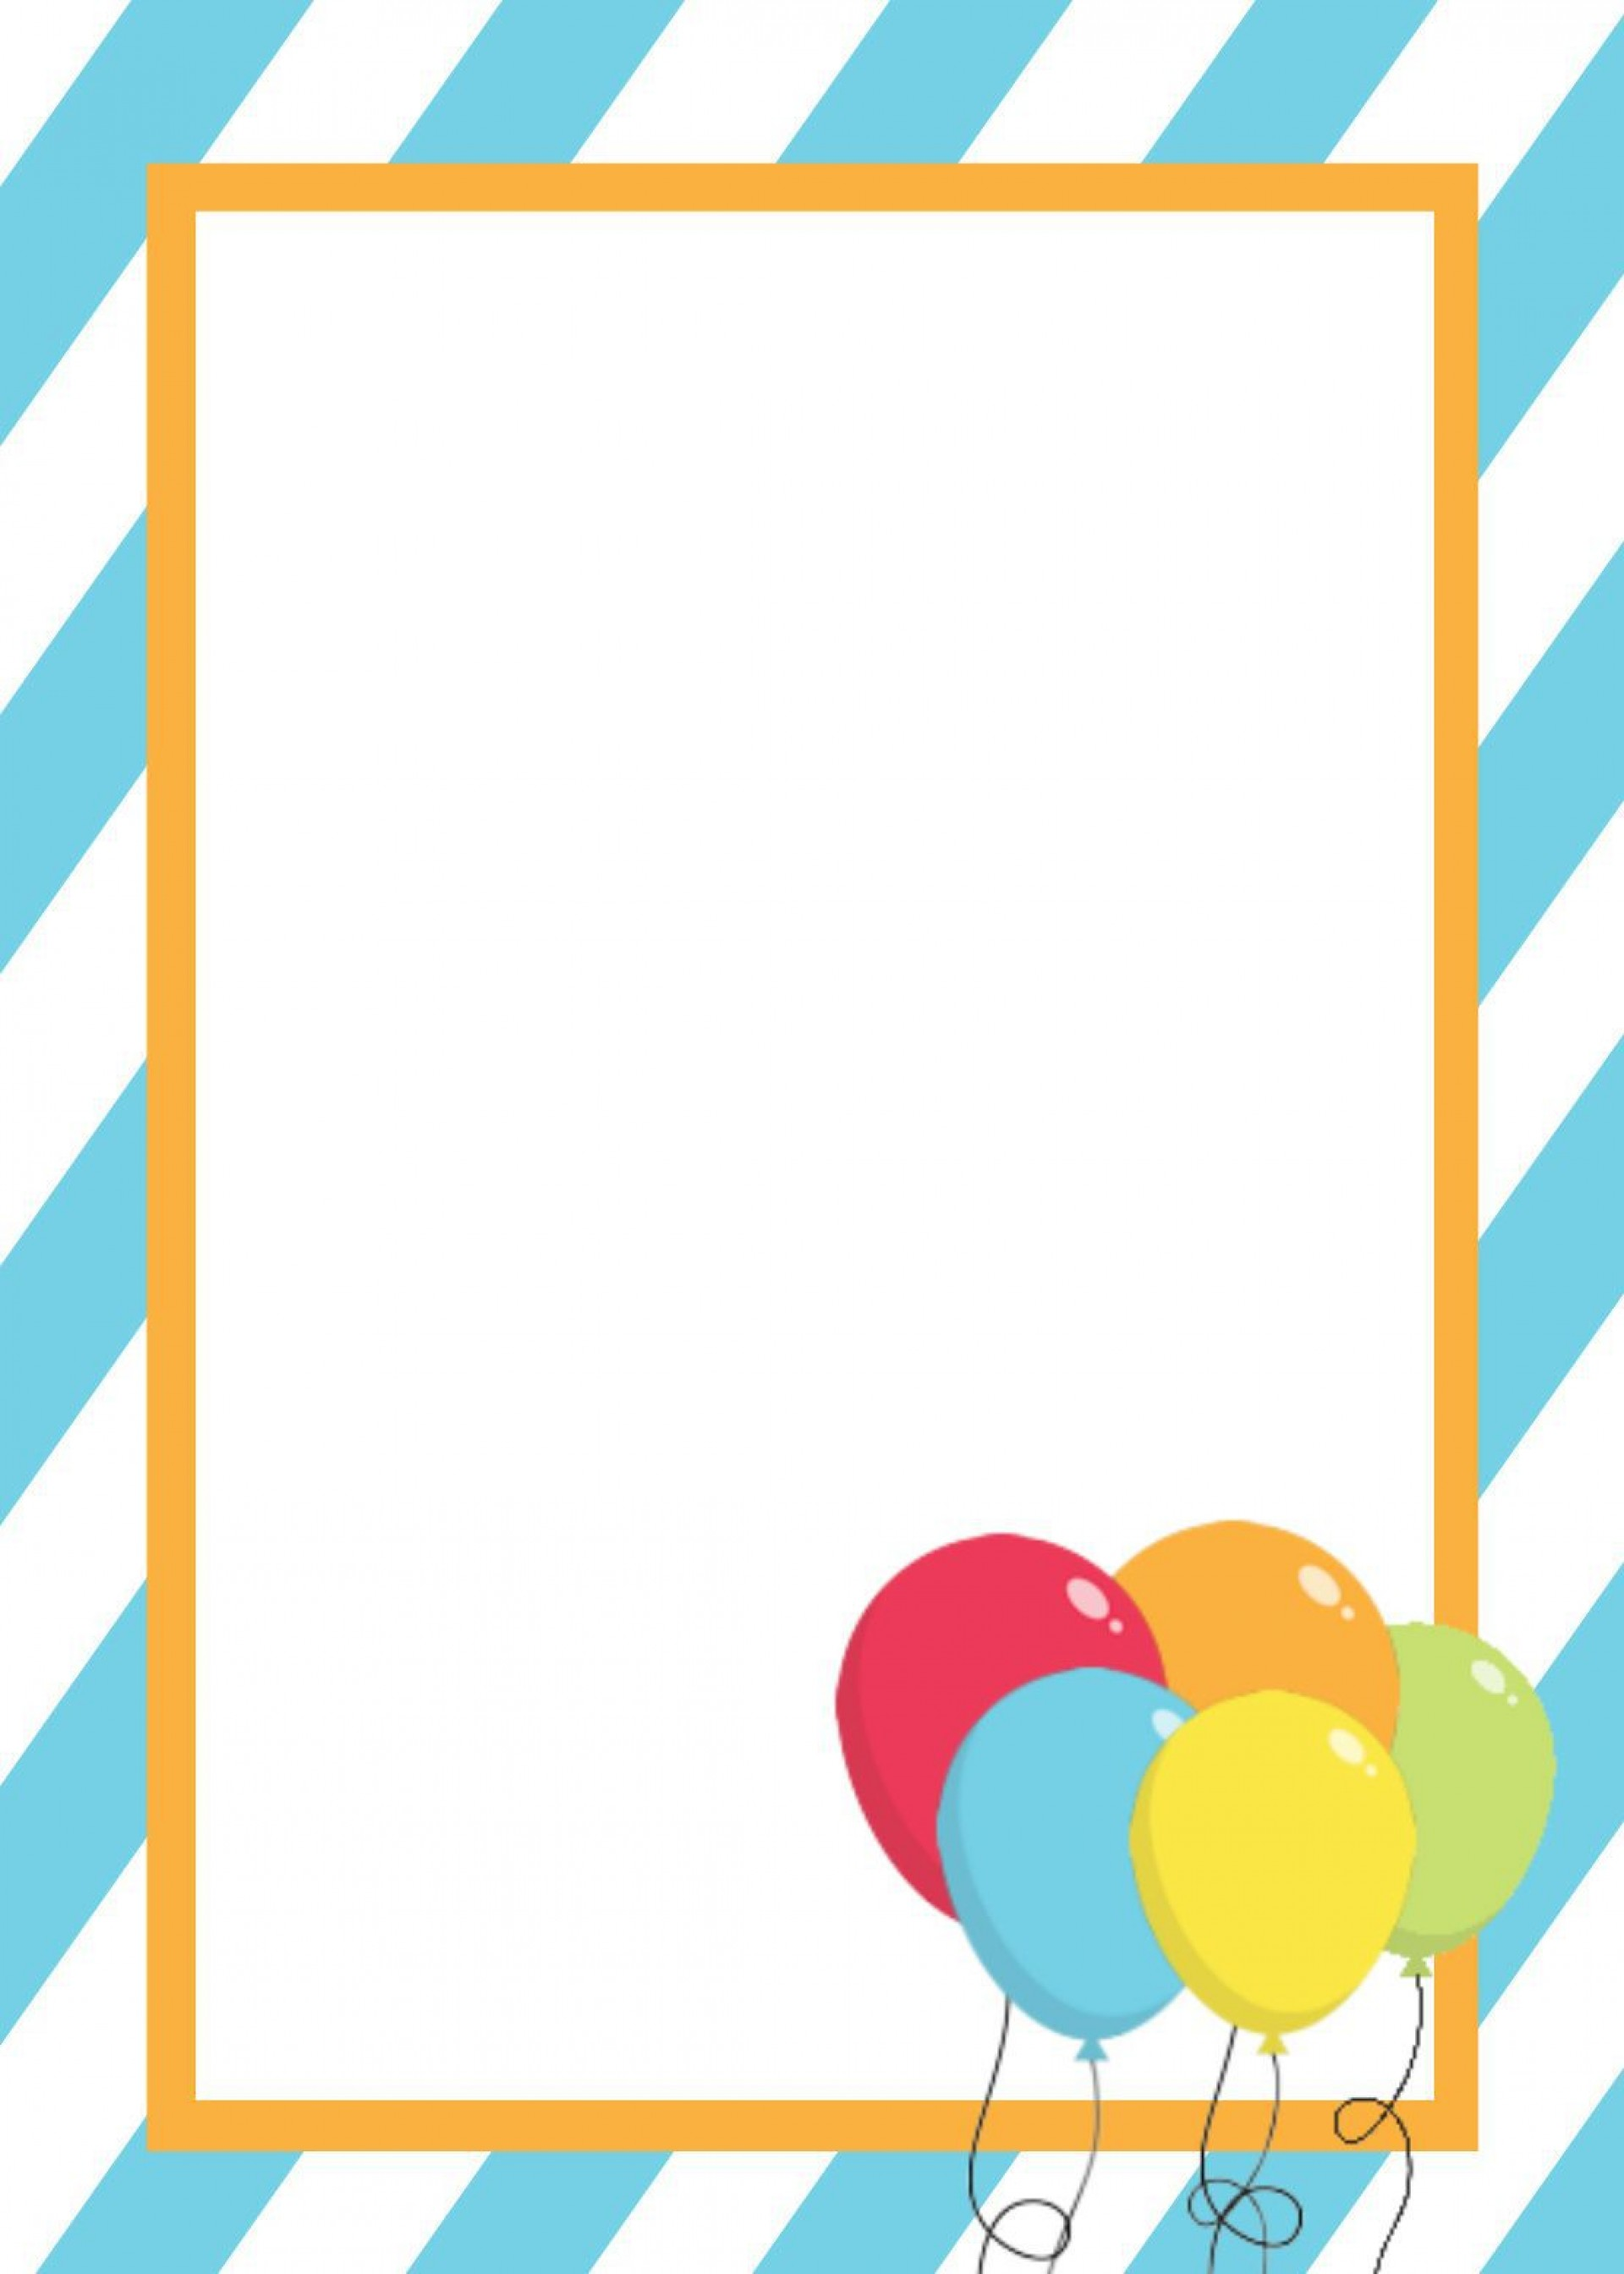 002 Awful Birthday Invitation Card Word Format Example  Template Free1920